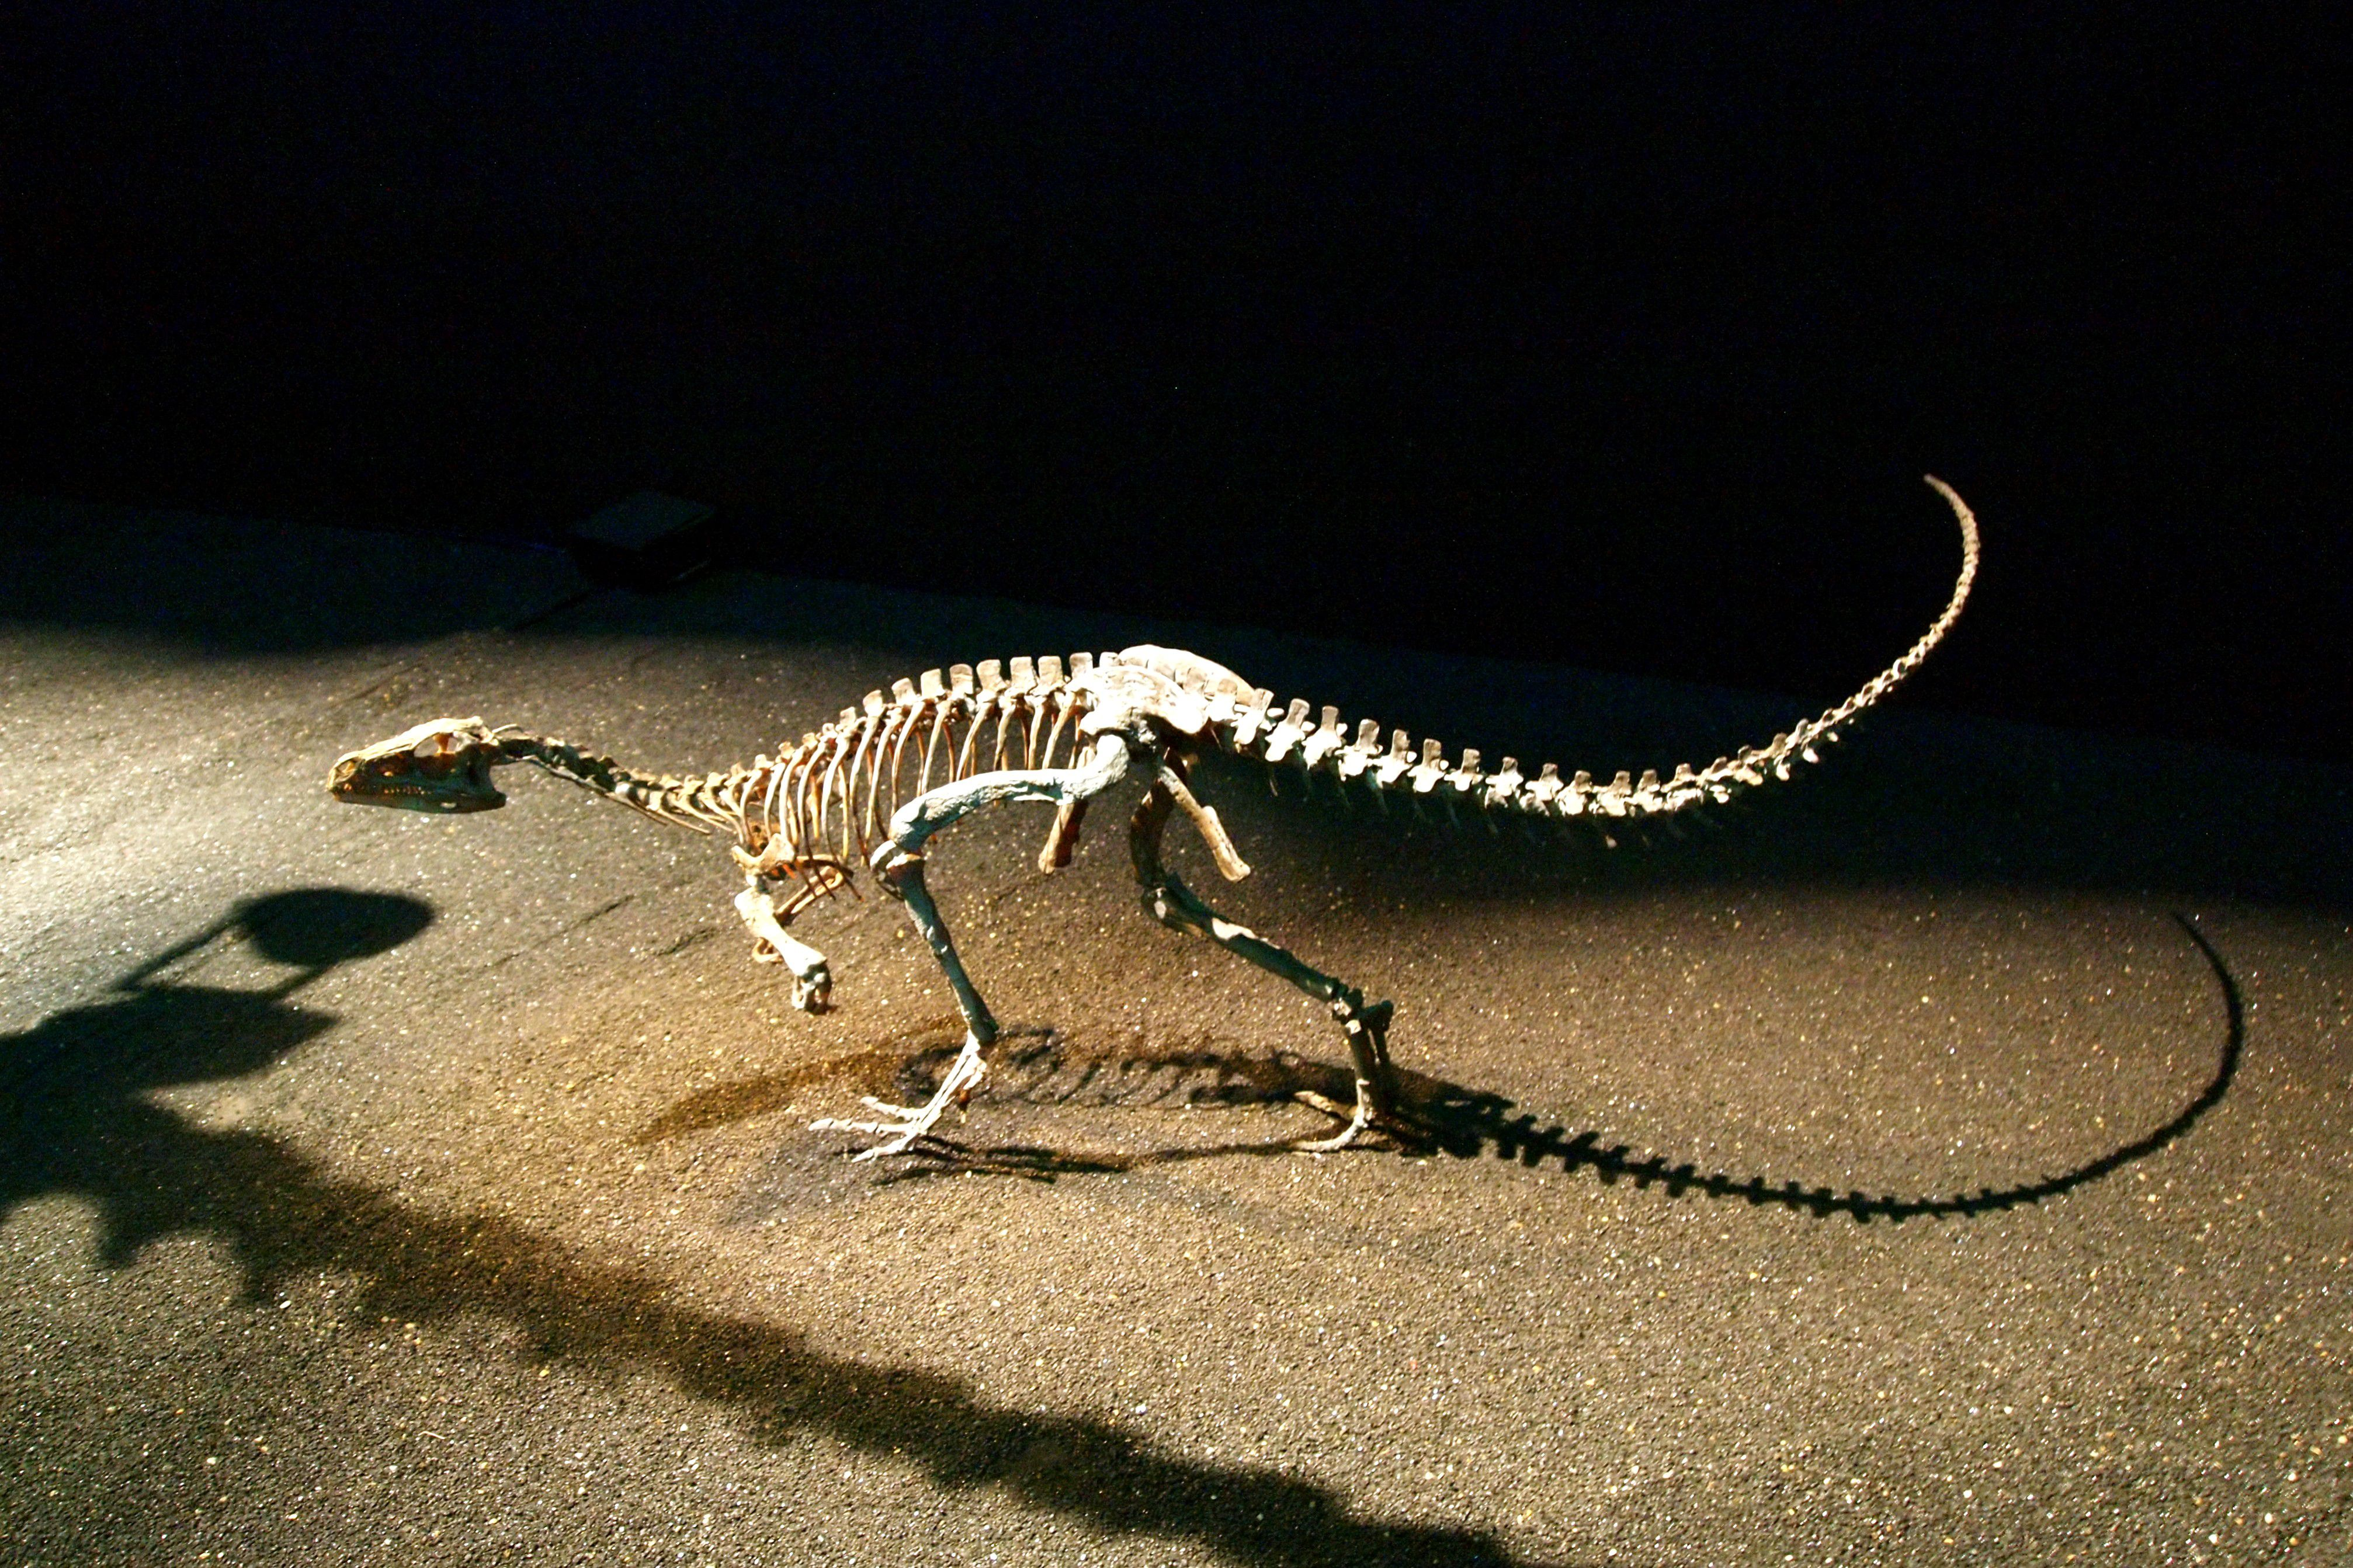 The skeleton of an eoraptor at the Mori Arts center in Japan